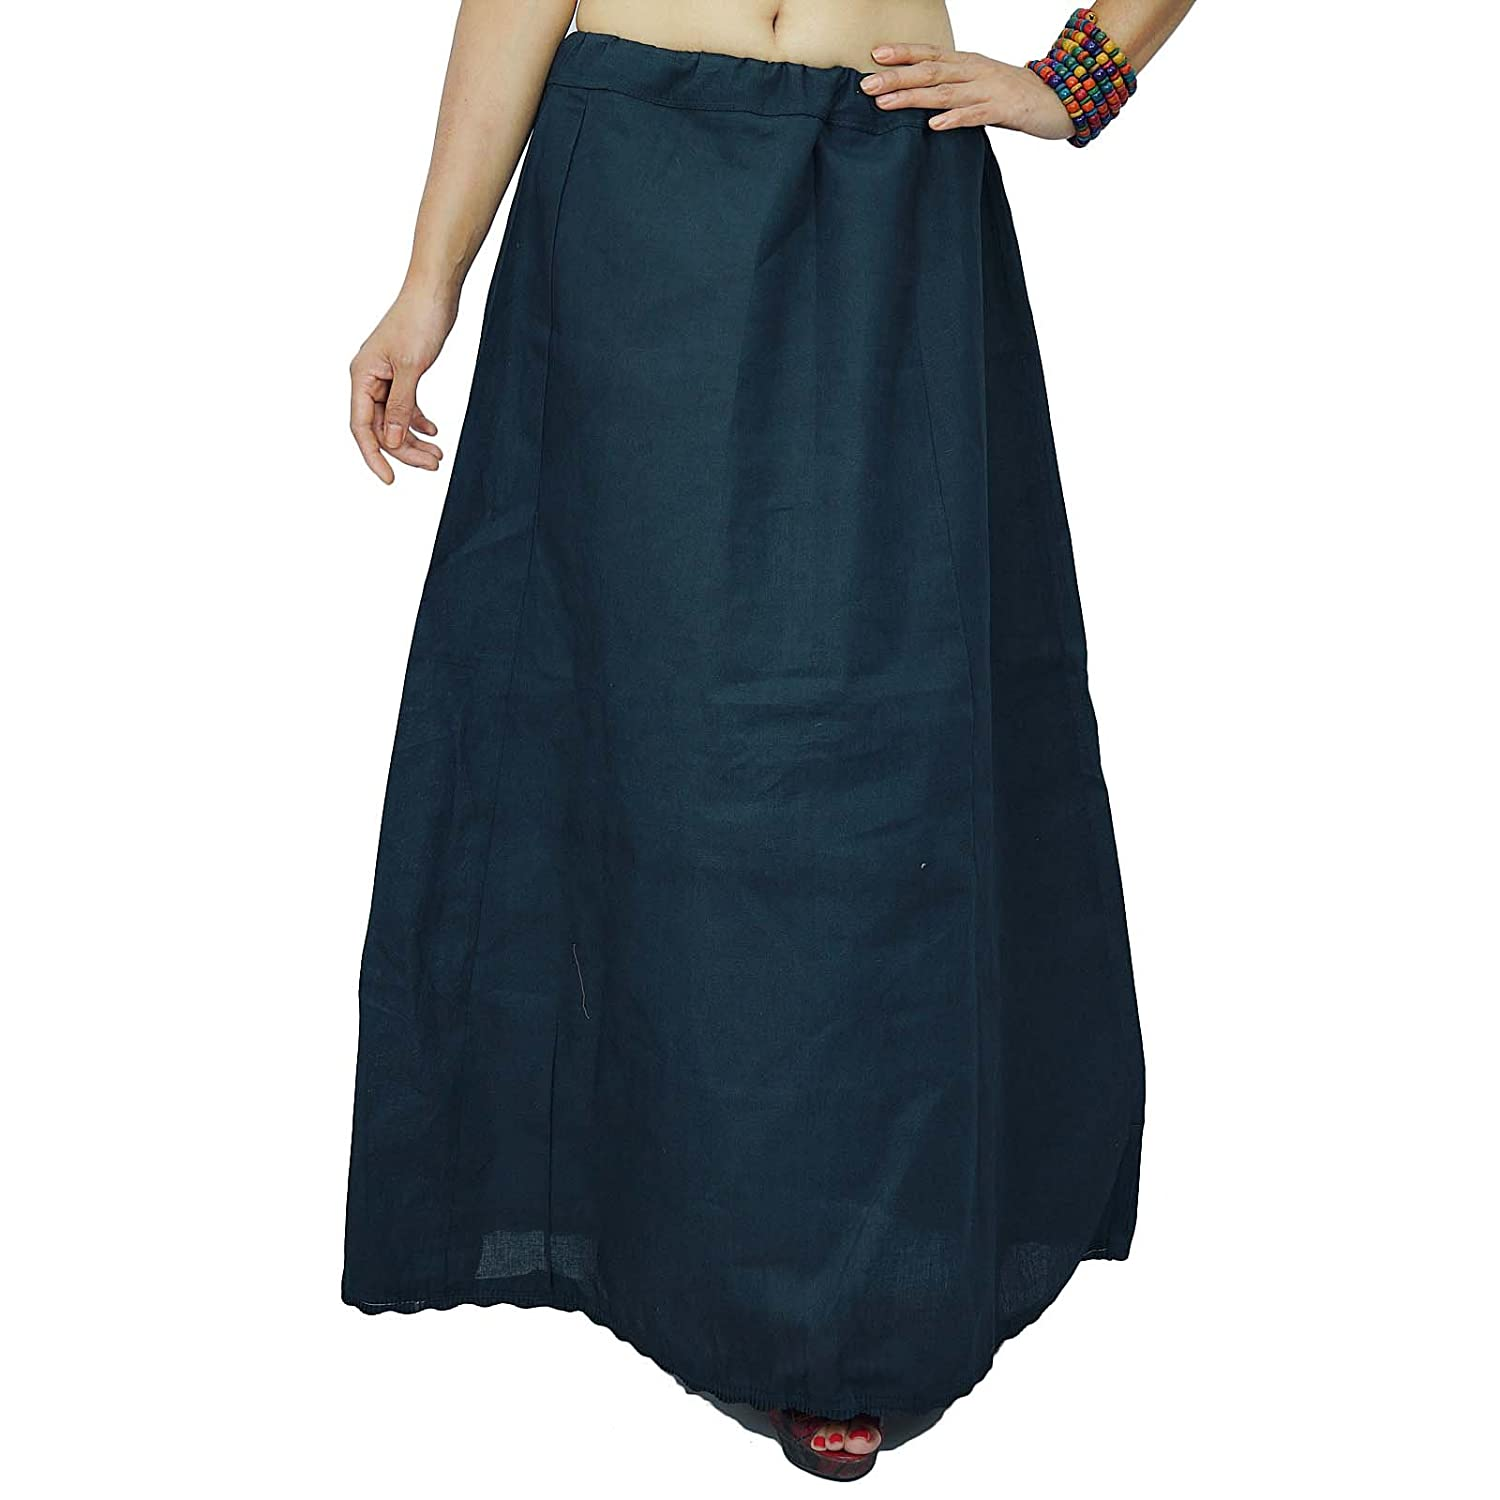 Solide Petticoatunderskirt Bollywood Indian Cotton-Futter für Sari